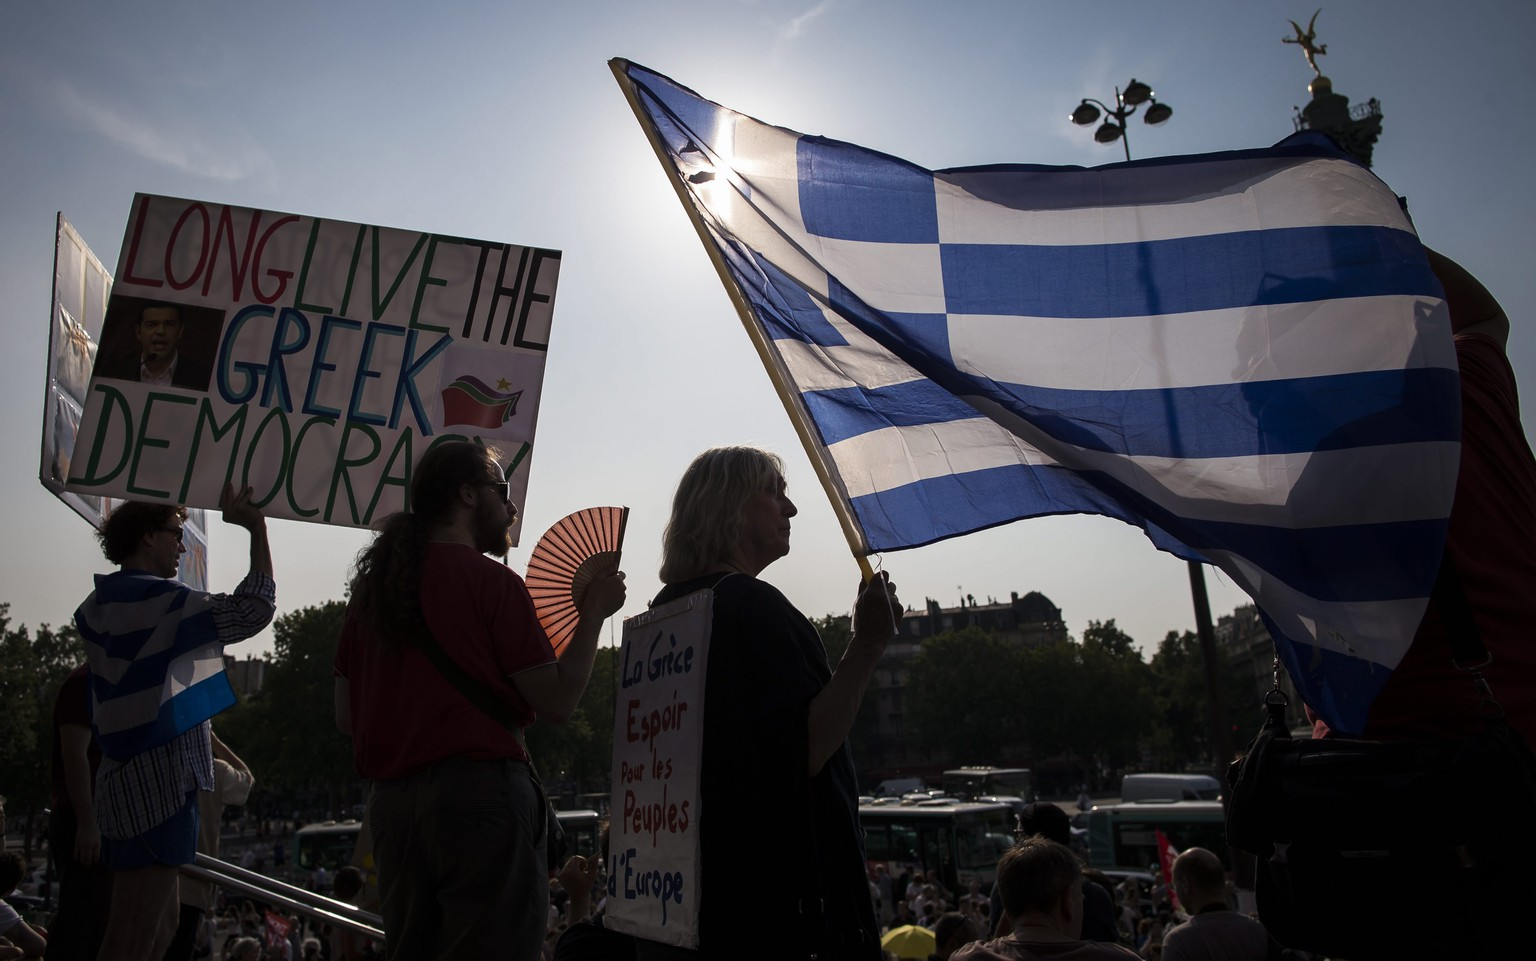 epaselect epa04828444 Protesters hold a Greek flag during a rally to support the Greek people, on Place de la Bastille, in Paris, France, 02 July 2015.  It would be 'extremely difficult' to keep Greece in the eurozone if the country votes 'no' in this weekend's referendum, Jeroen Dijsselbloem, the head of the Eurogroup of eurozone finance ministers, said on 02 July. On 05 July, Greek voters will be asked whether the country should accept reform proposals made by its creditors. Prime Minister Alexis Tsipras is telling people to reject the measures, arguing that a 'no' would give him a mandate for new bailout negotiations.  EPA/IAN LANGSDON